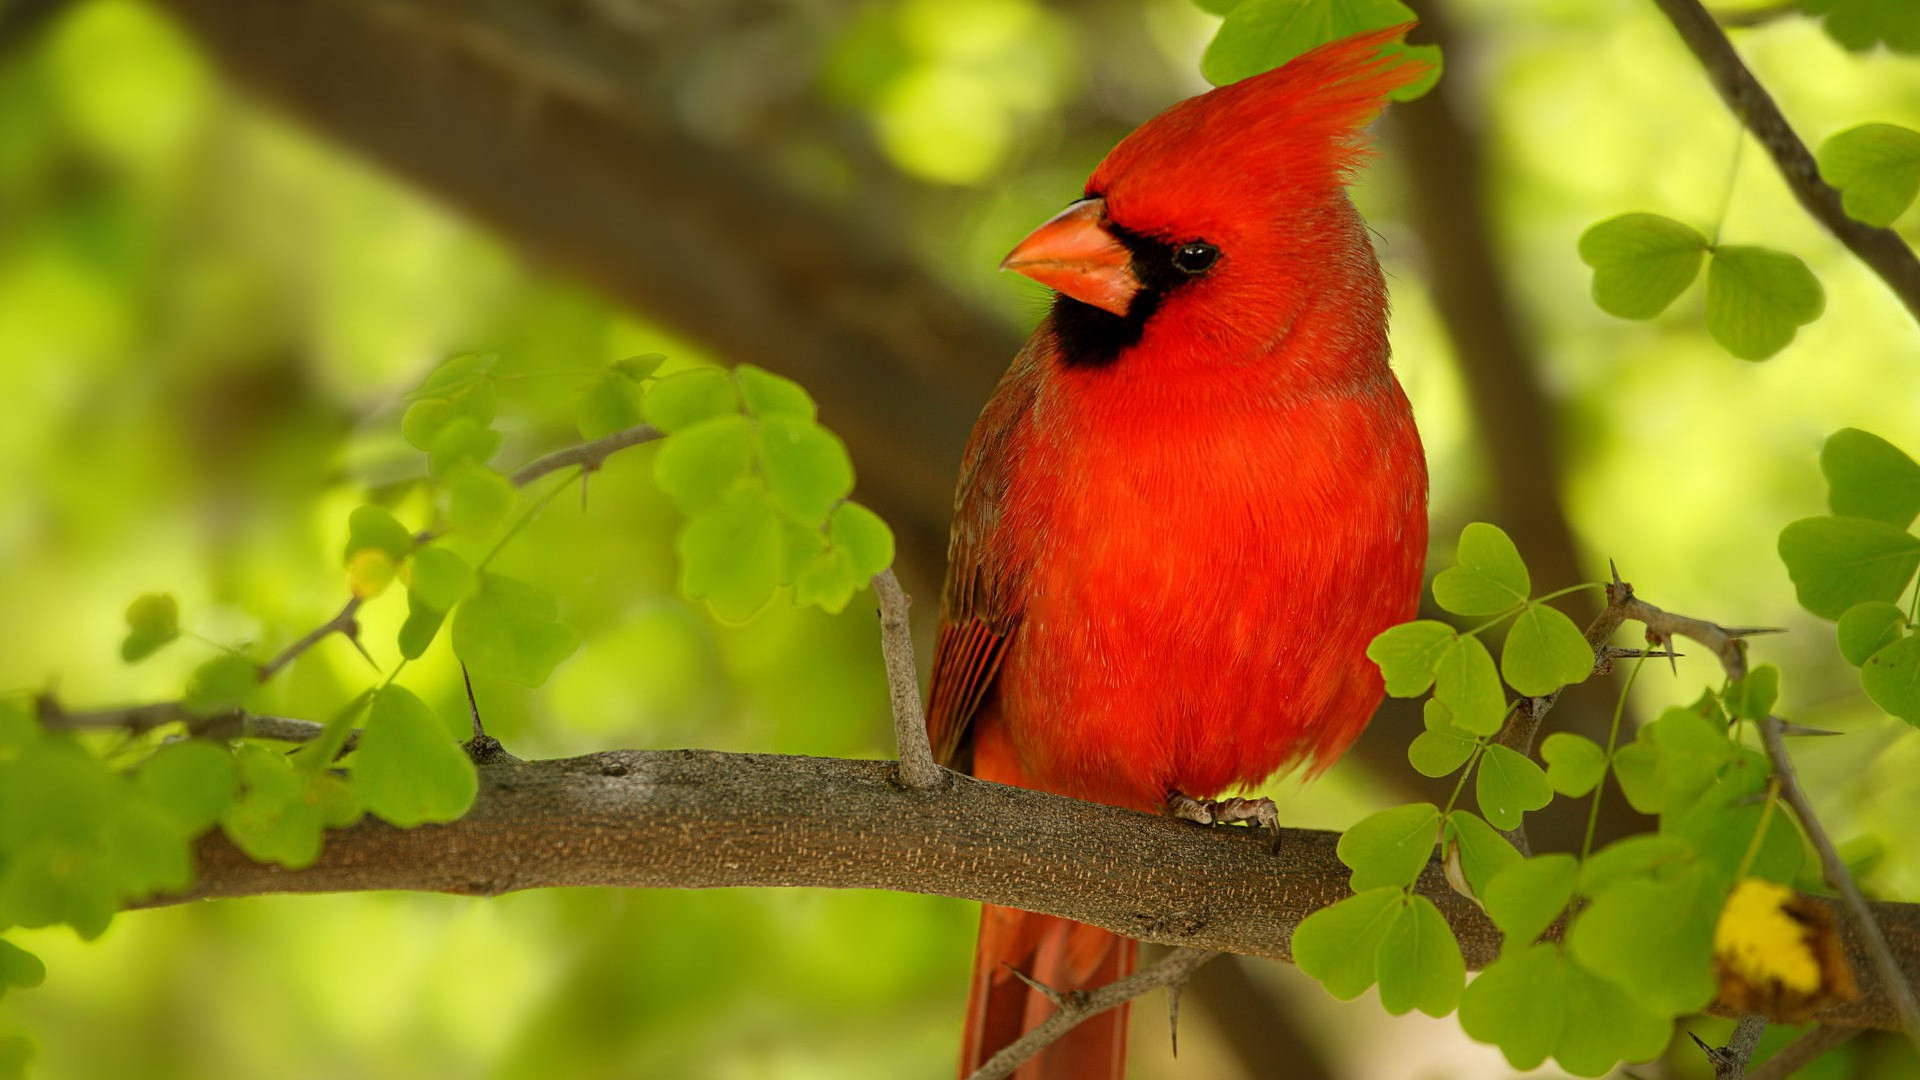 Red Bird HD 1080p Wallpapers Download HD Wallpapers Source 1920x1080